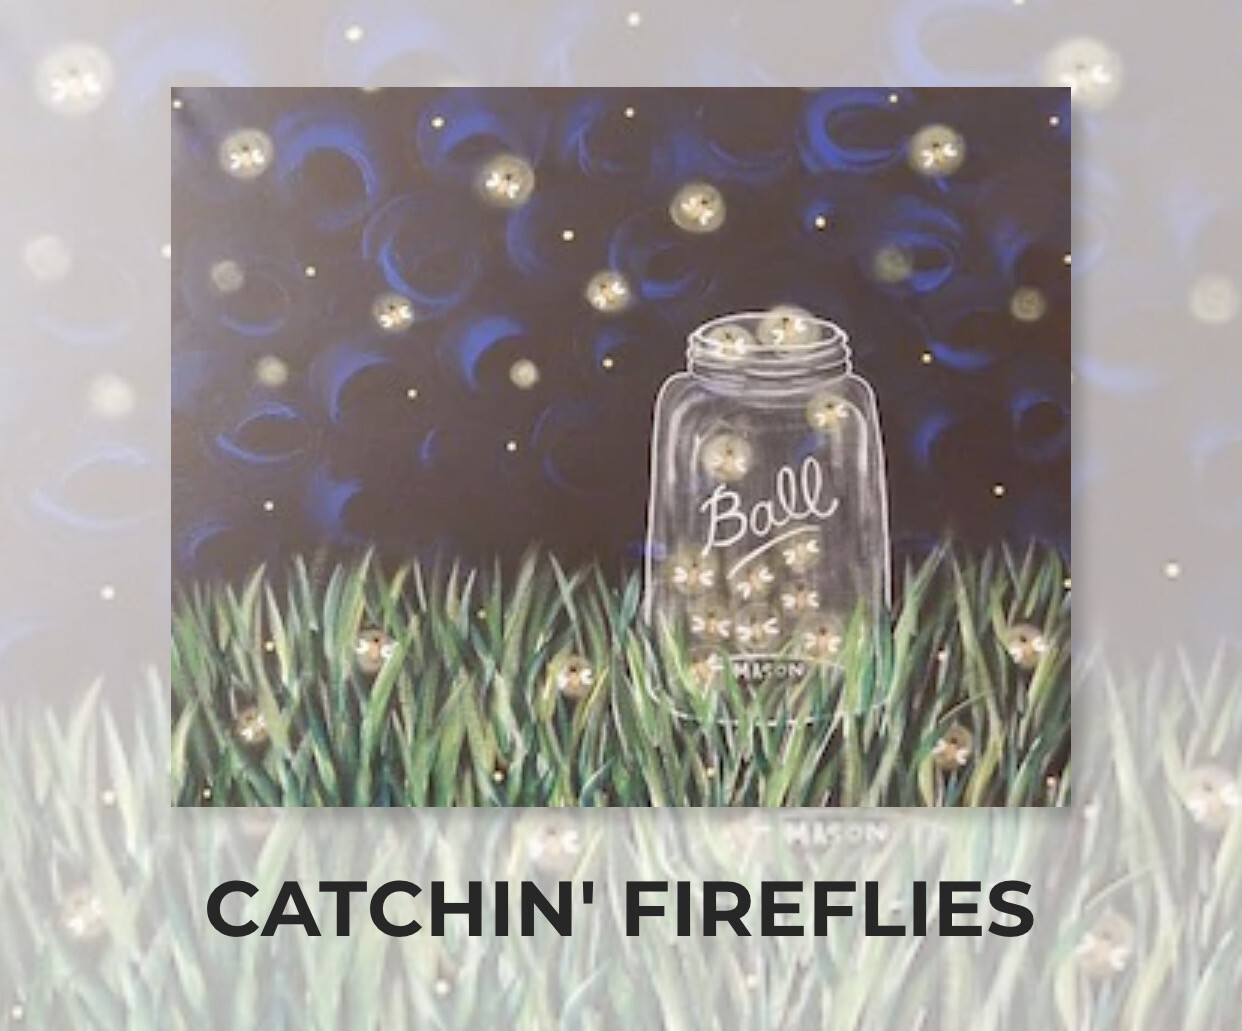 Catchin' Fireflies ADULT Acrylic Paint On Canvas DIY Art Kit